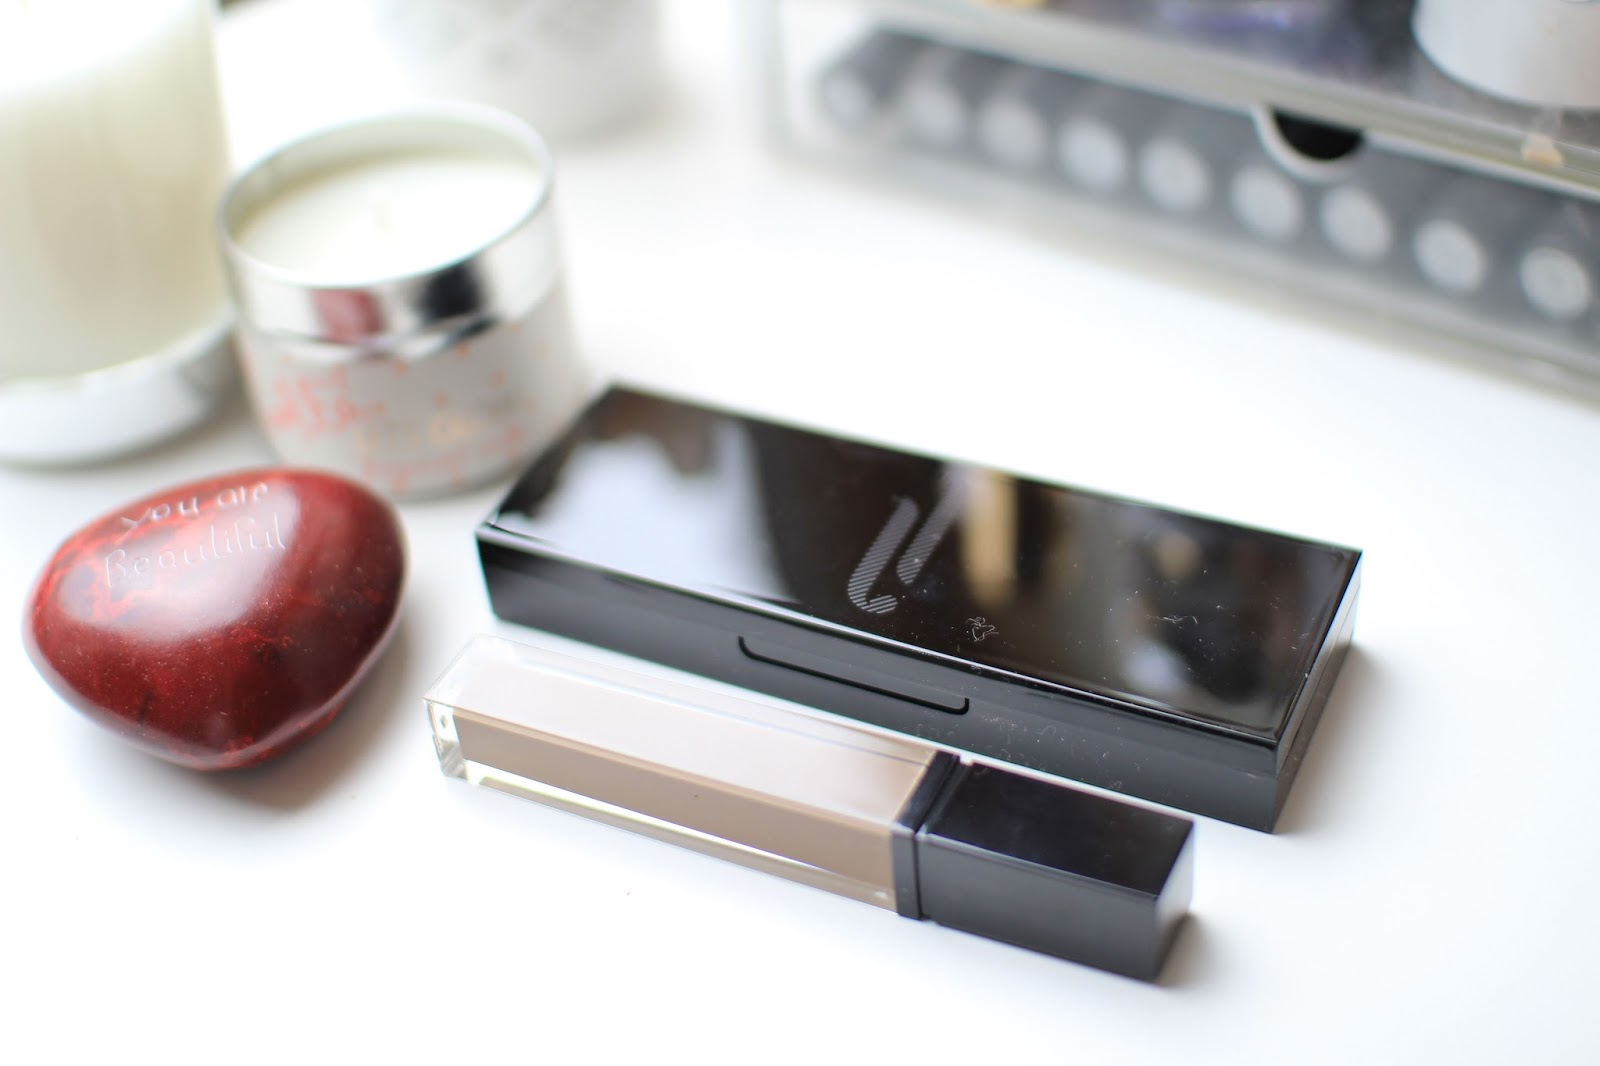 The HD Brows Brow and Eye Palette and Browfix